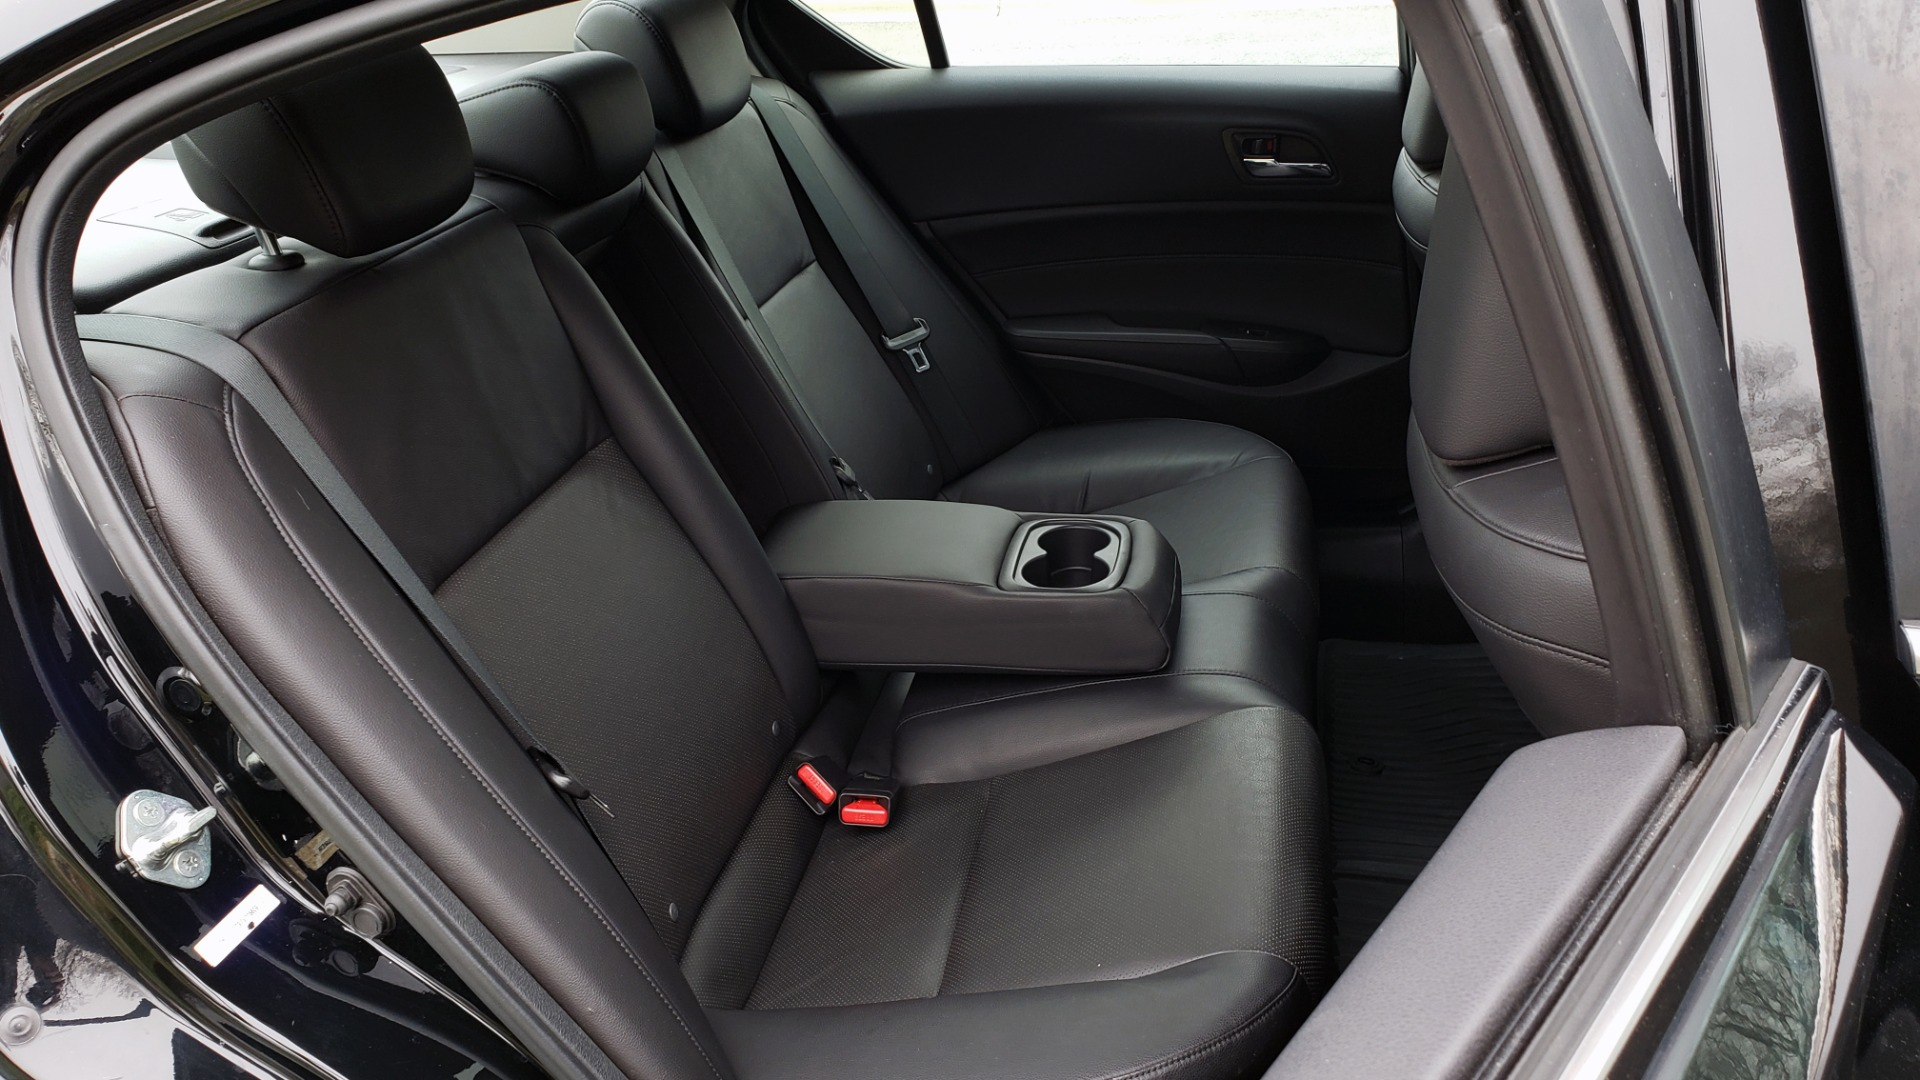 Used 2013 Acura ILX TECH PKG / SUNROOF / NAV / DUAL-ZONE A/C / REARVIEW for sale Sold at Formula Imports in Charlotte NC 28227 65